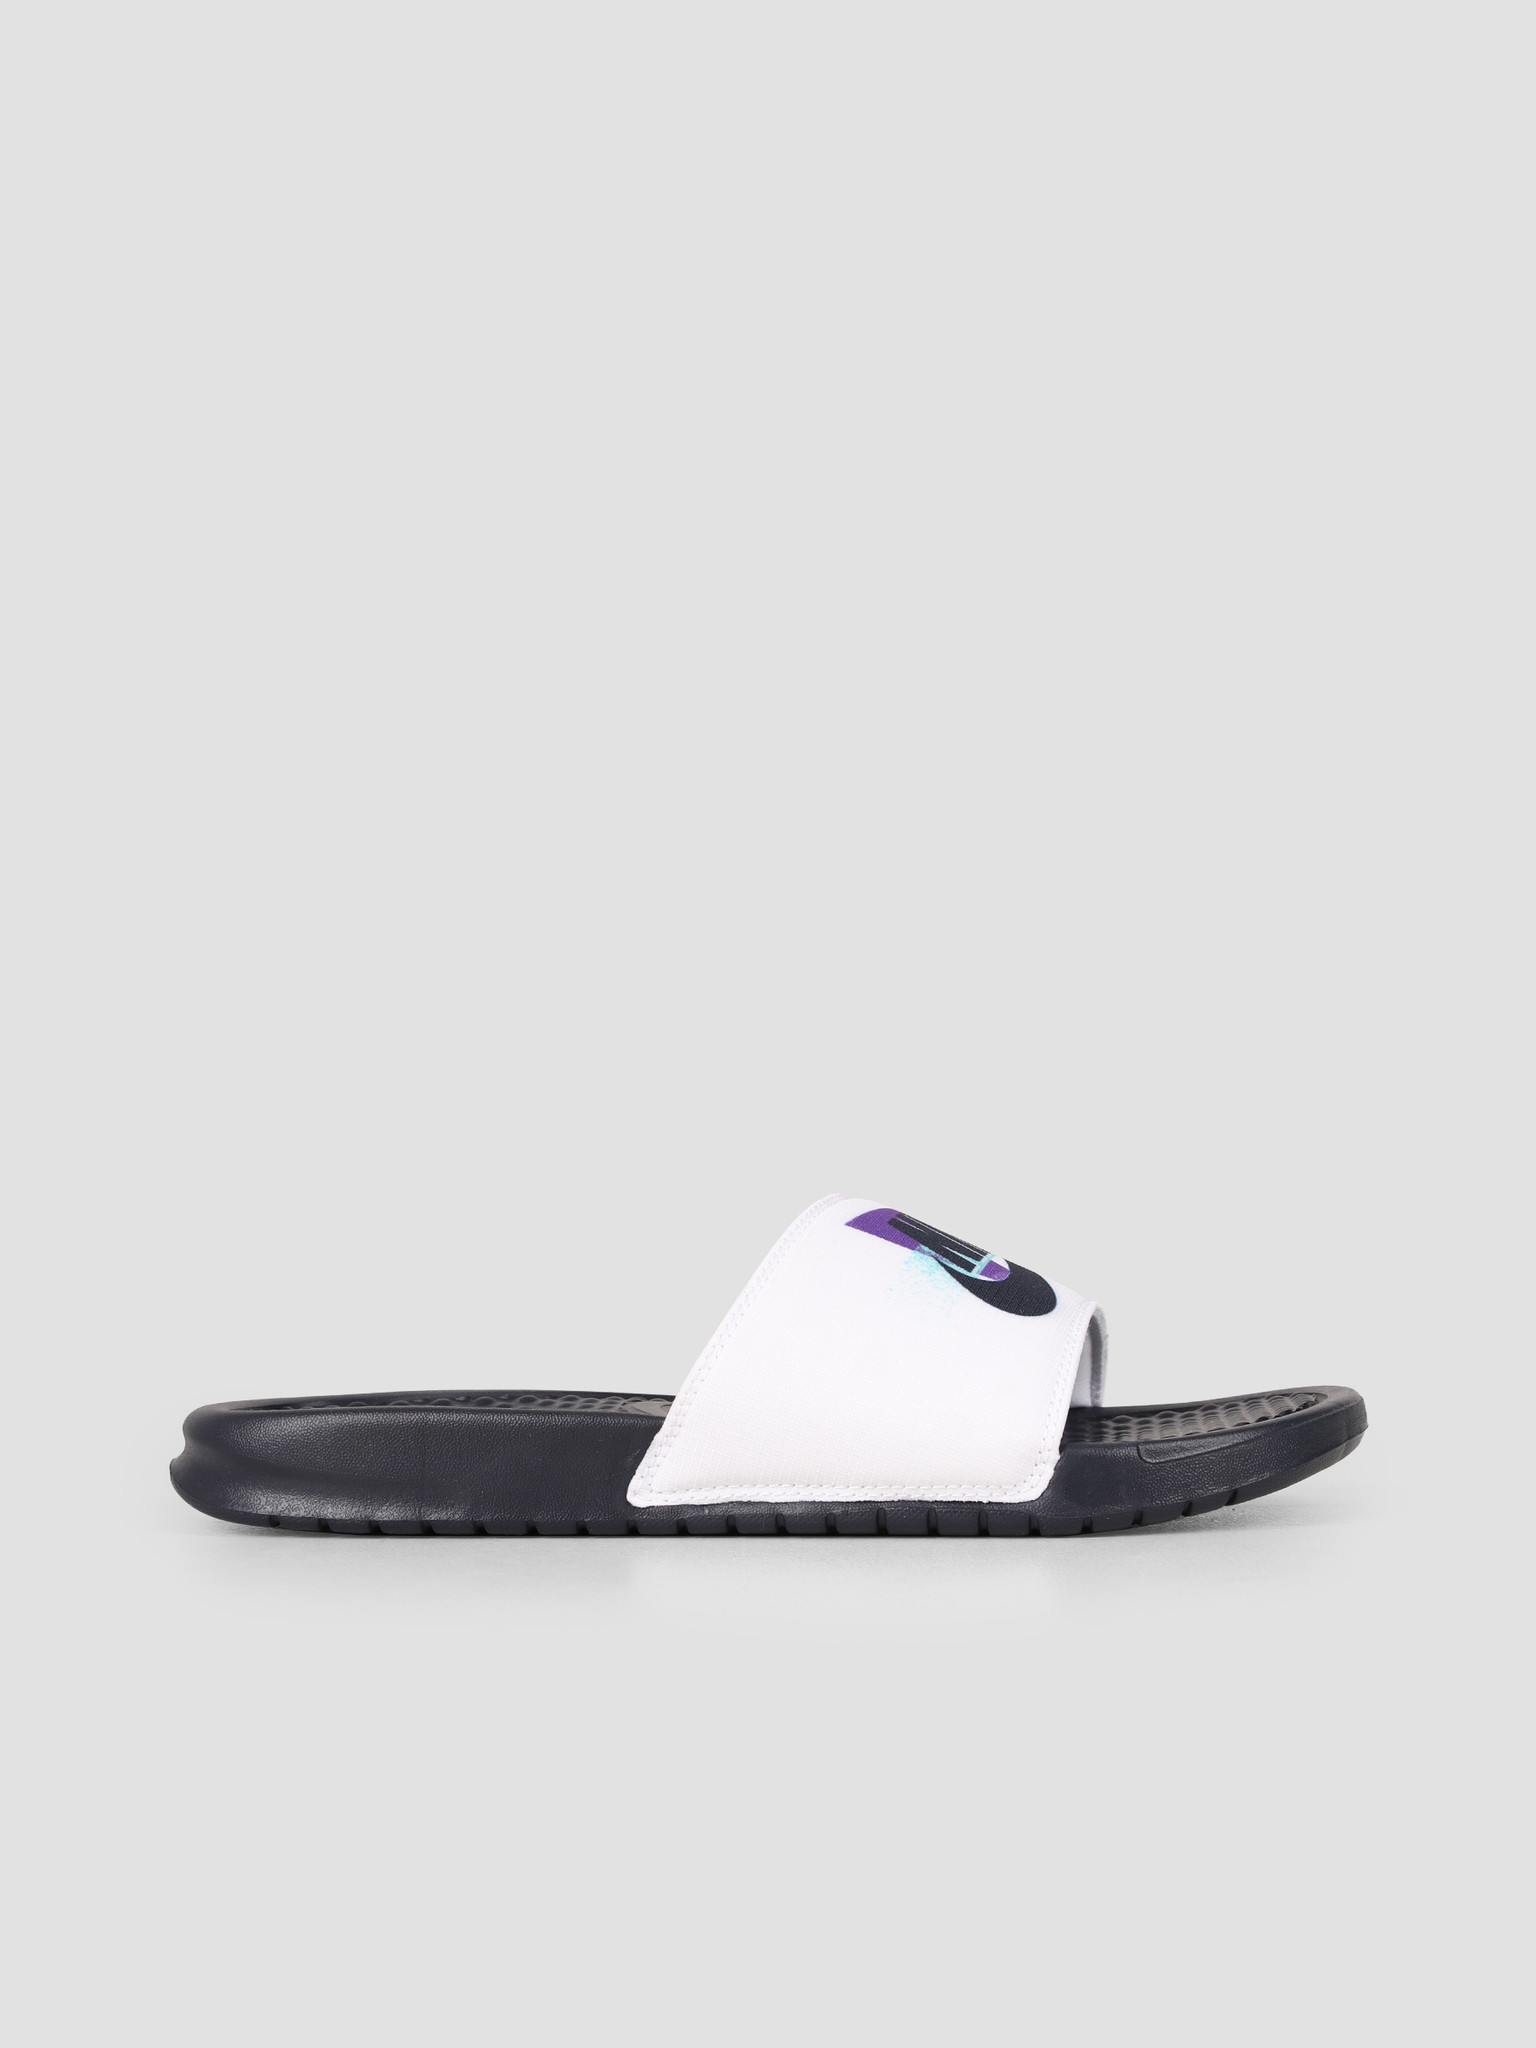 Nike Nike Benassi White Obsidian Hyper Grape Hyper Jade CJ6184-100